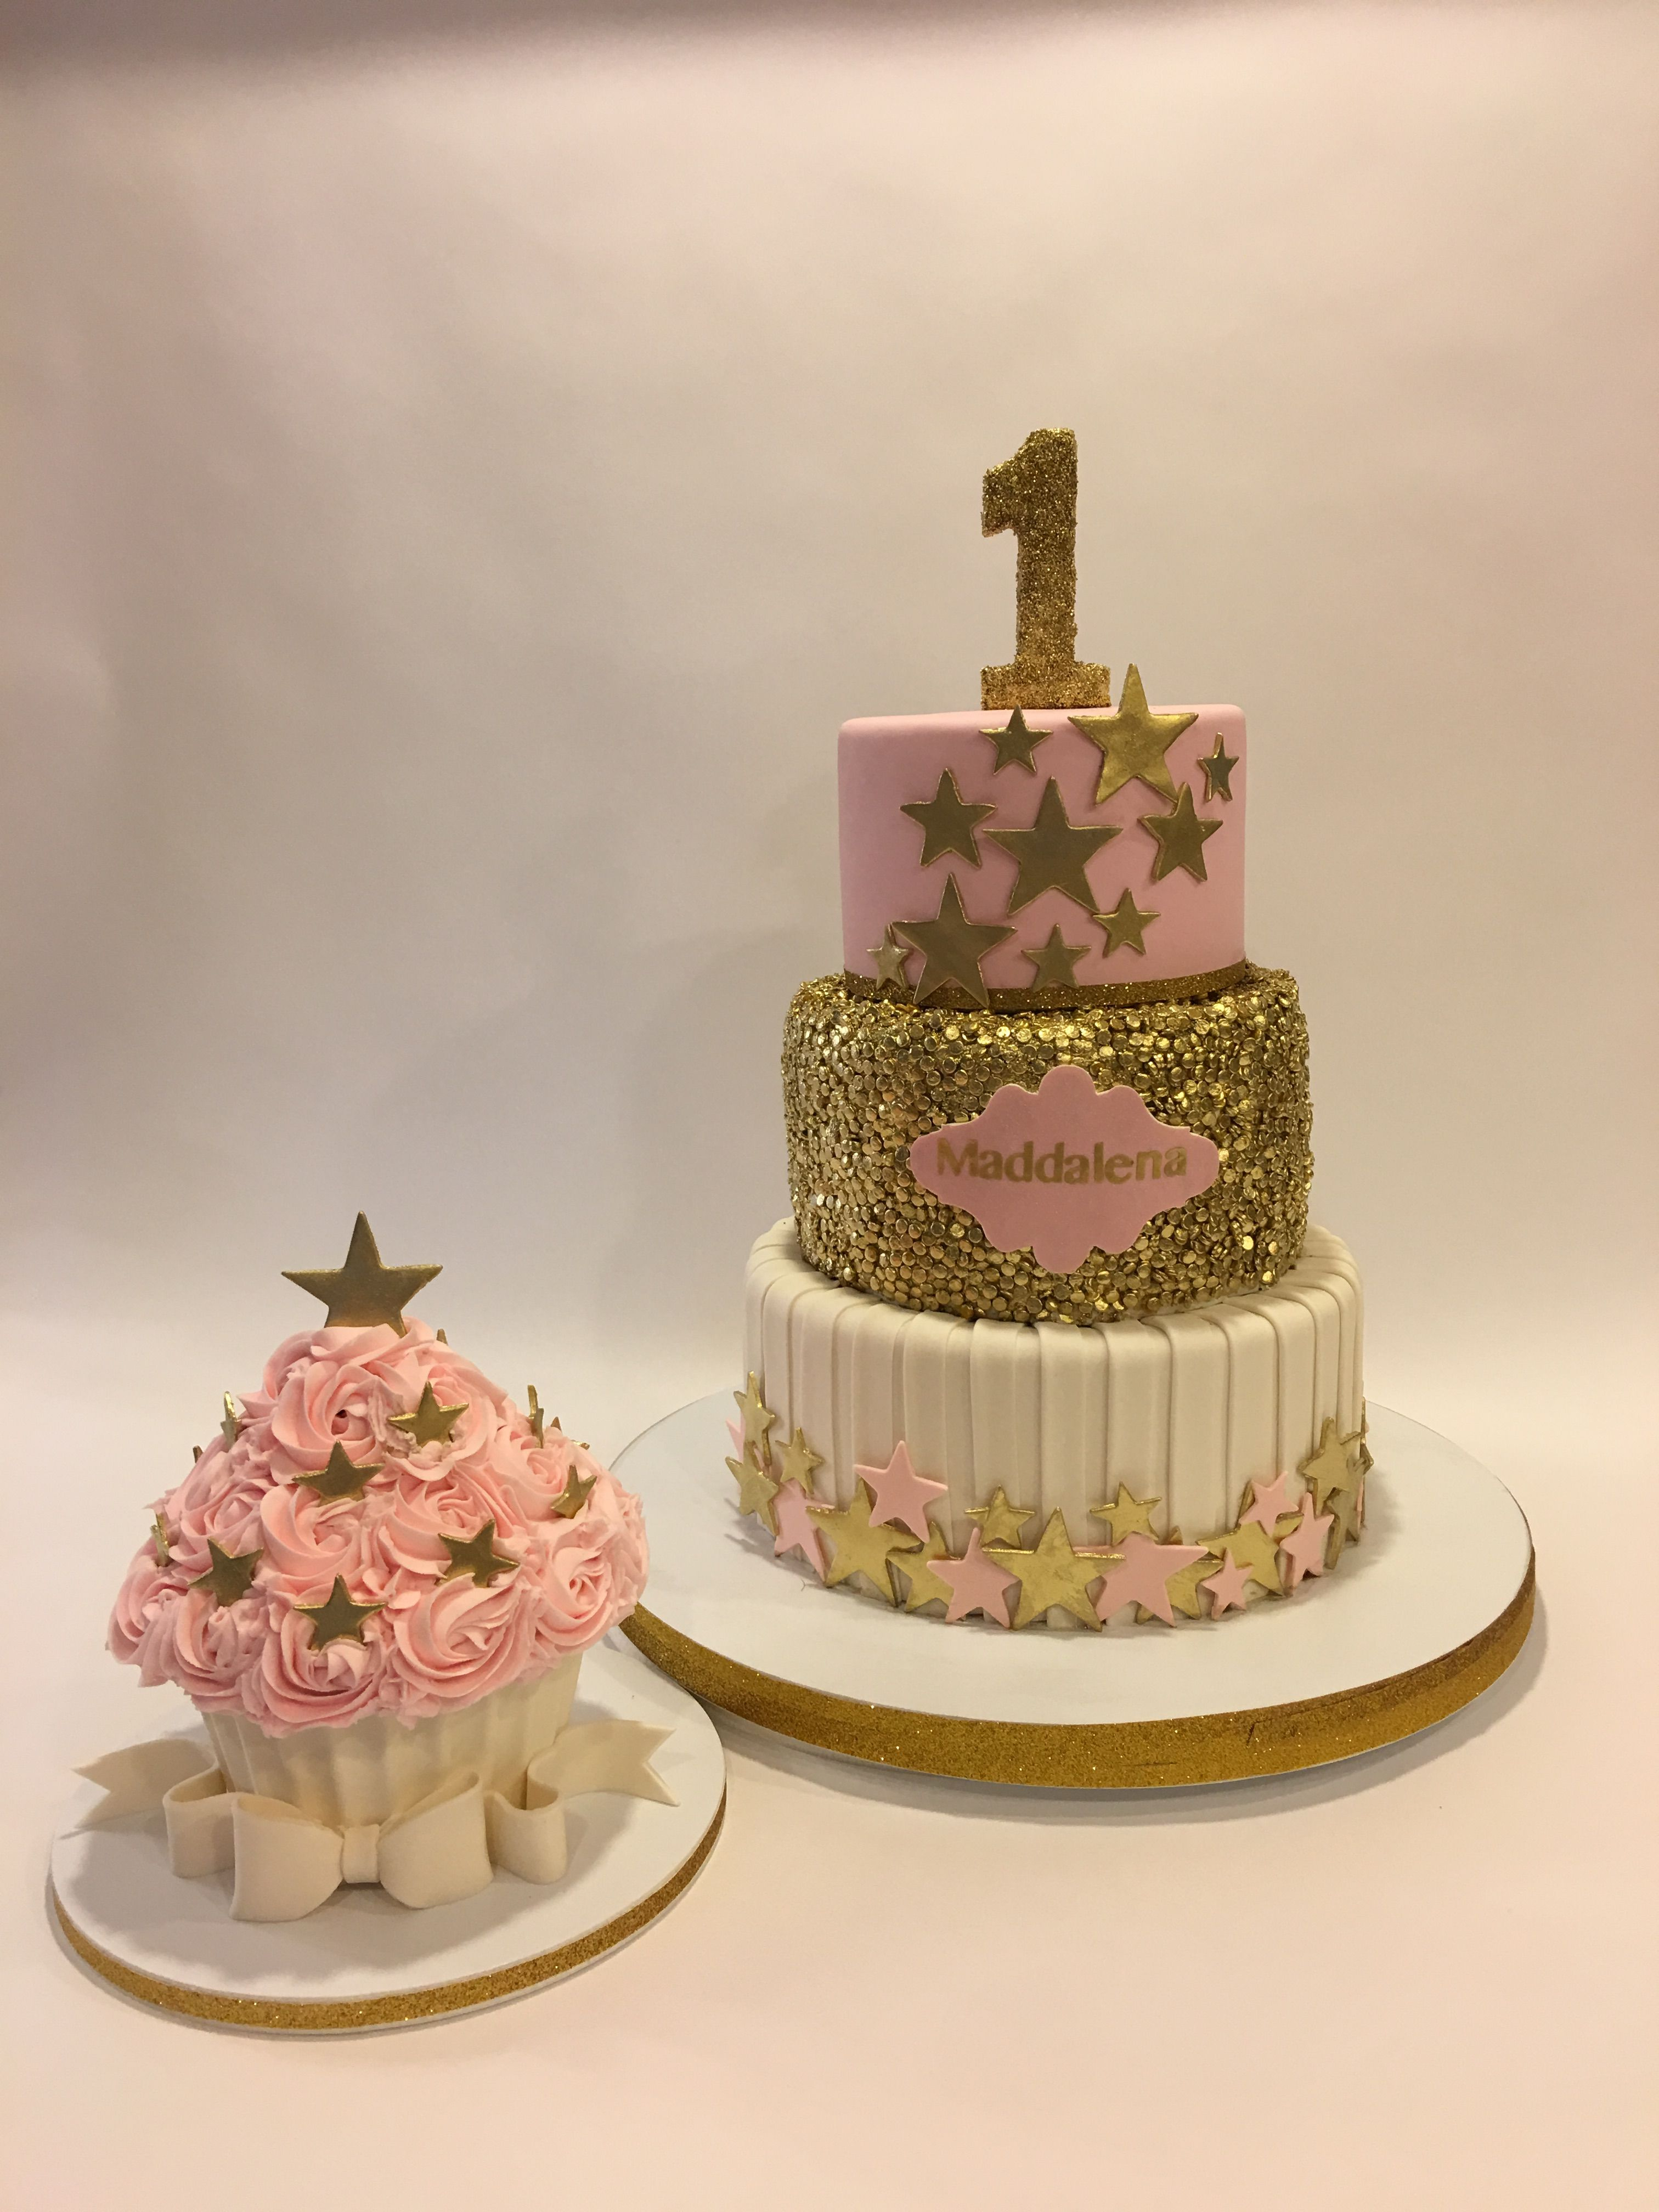 Twinkletwinkle Little Star 1st Birthday Cake With Smash Cake